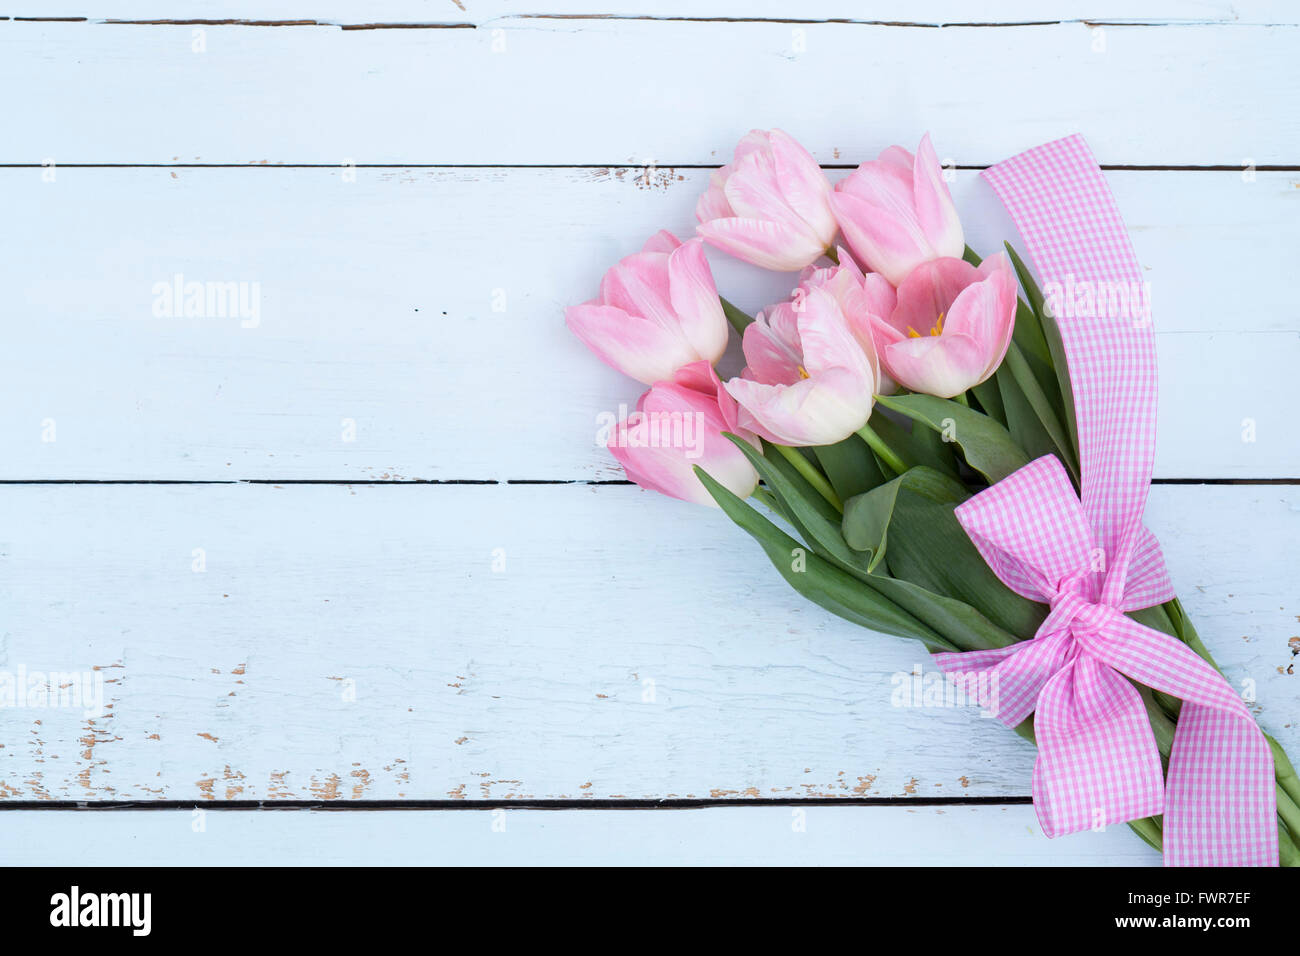 Beautiful bouquet of pink tulips on light wooden background - Stock Image